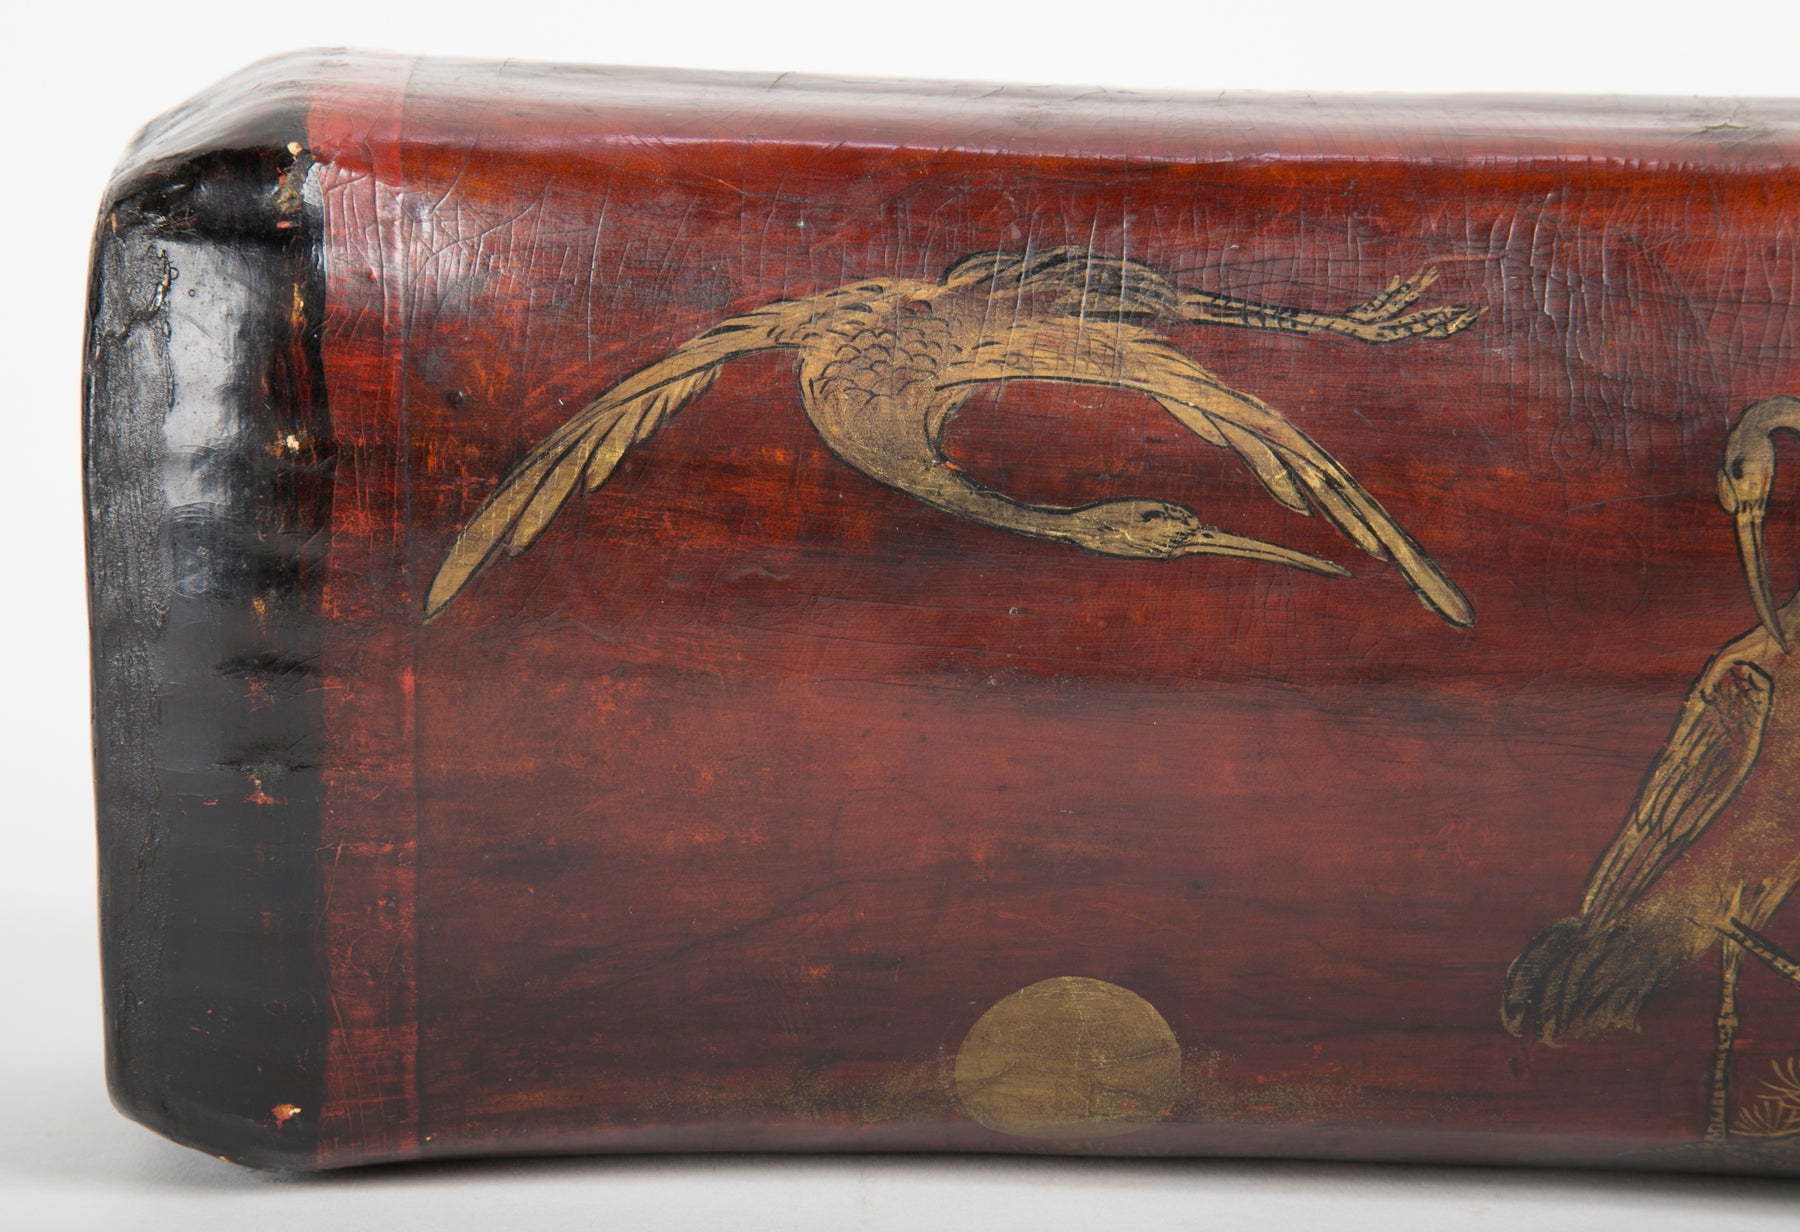 Chinese Leather Opium Pillow from the Craft House Luo Long Chang Signed by the Artist